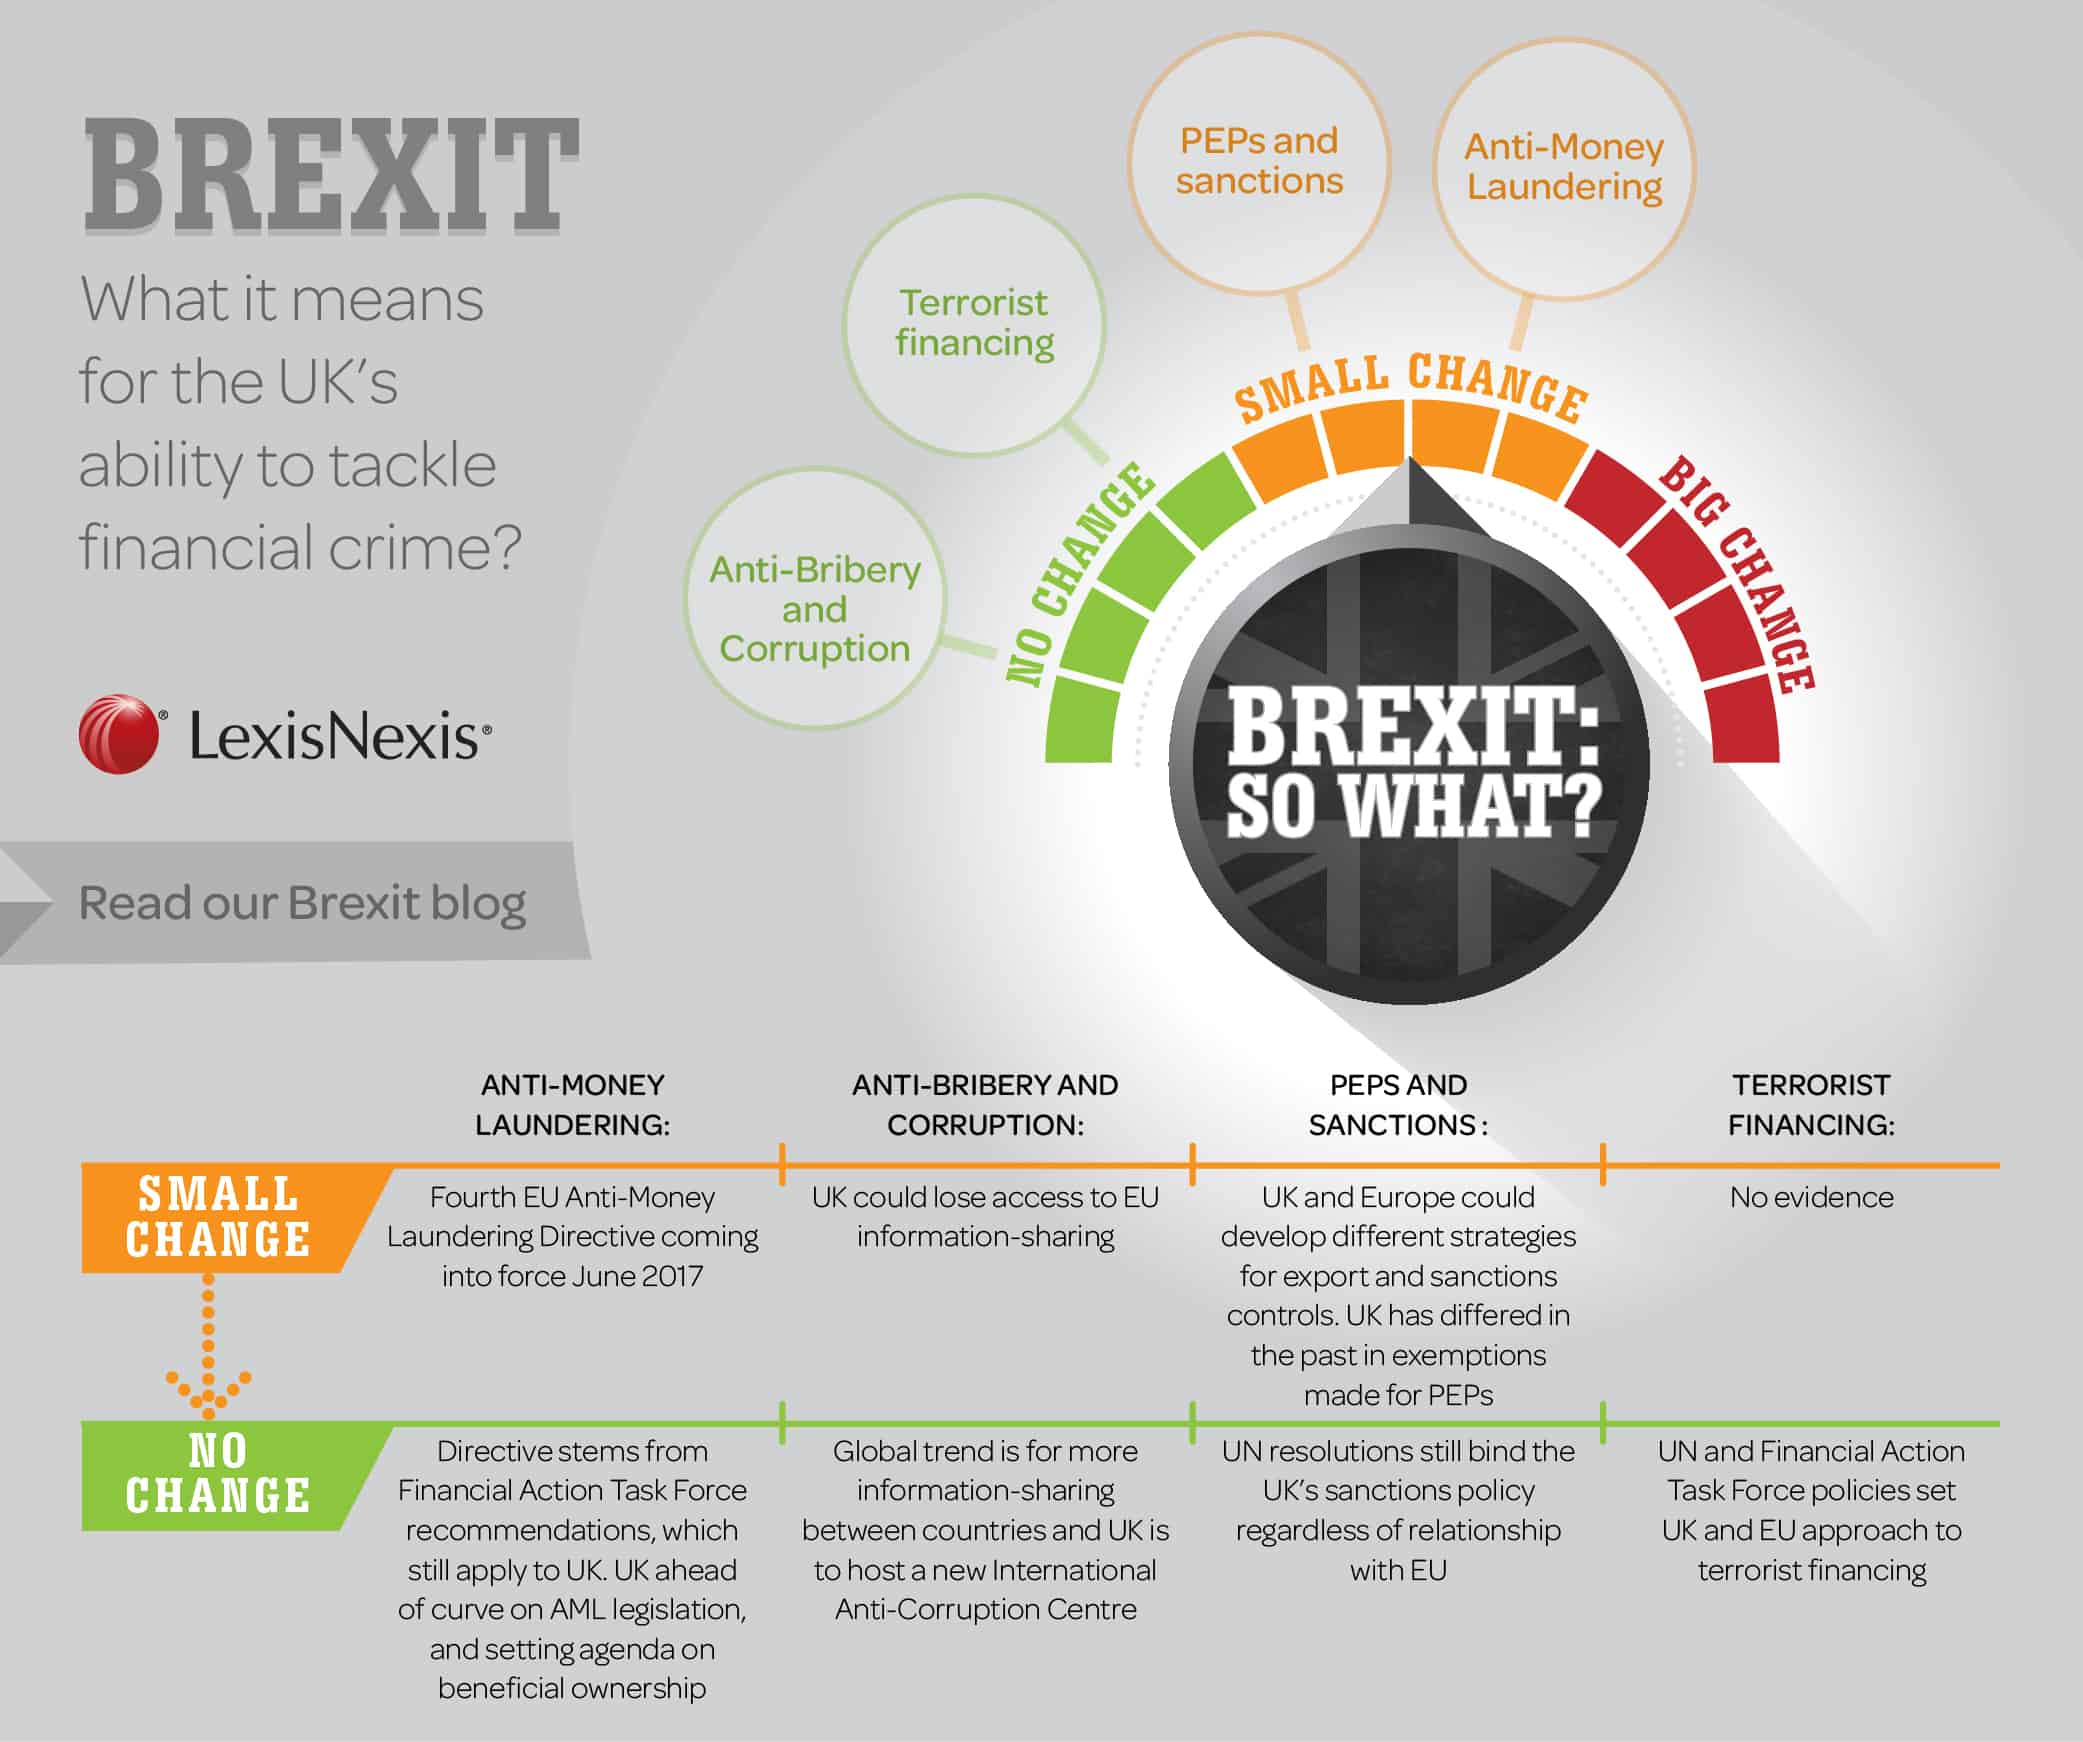 Brexit Anti-Money Laundering Infographic